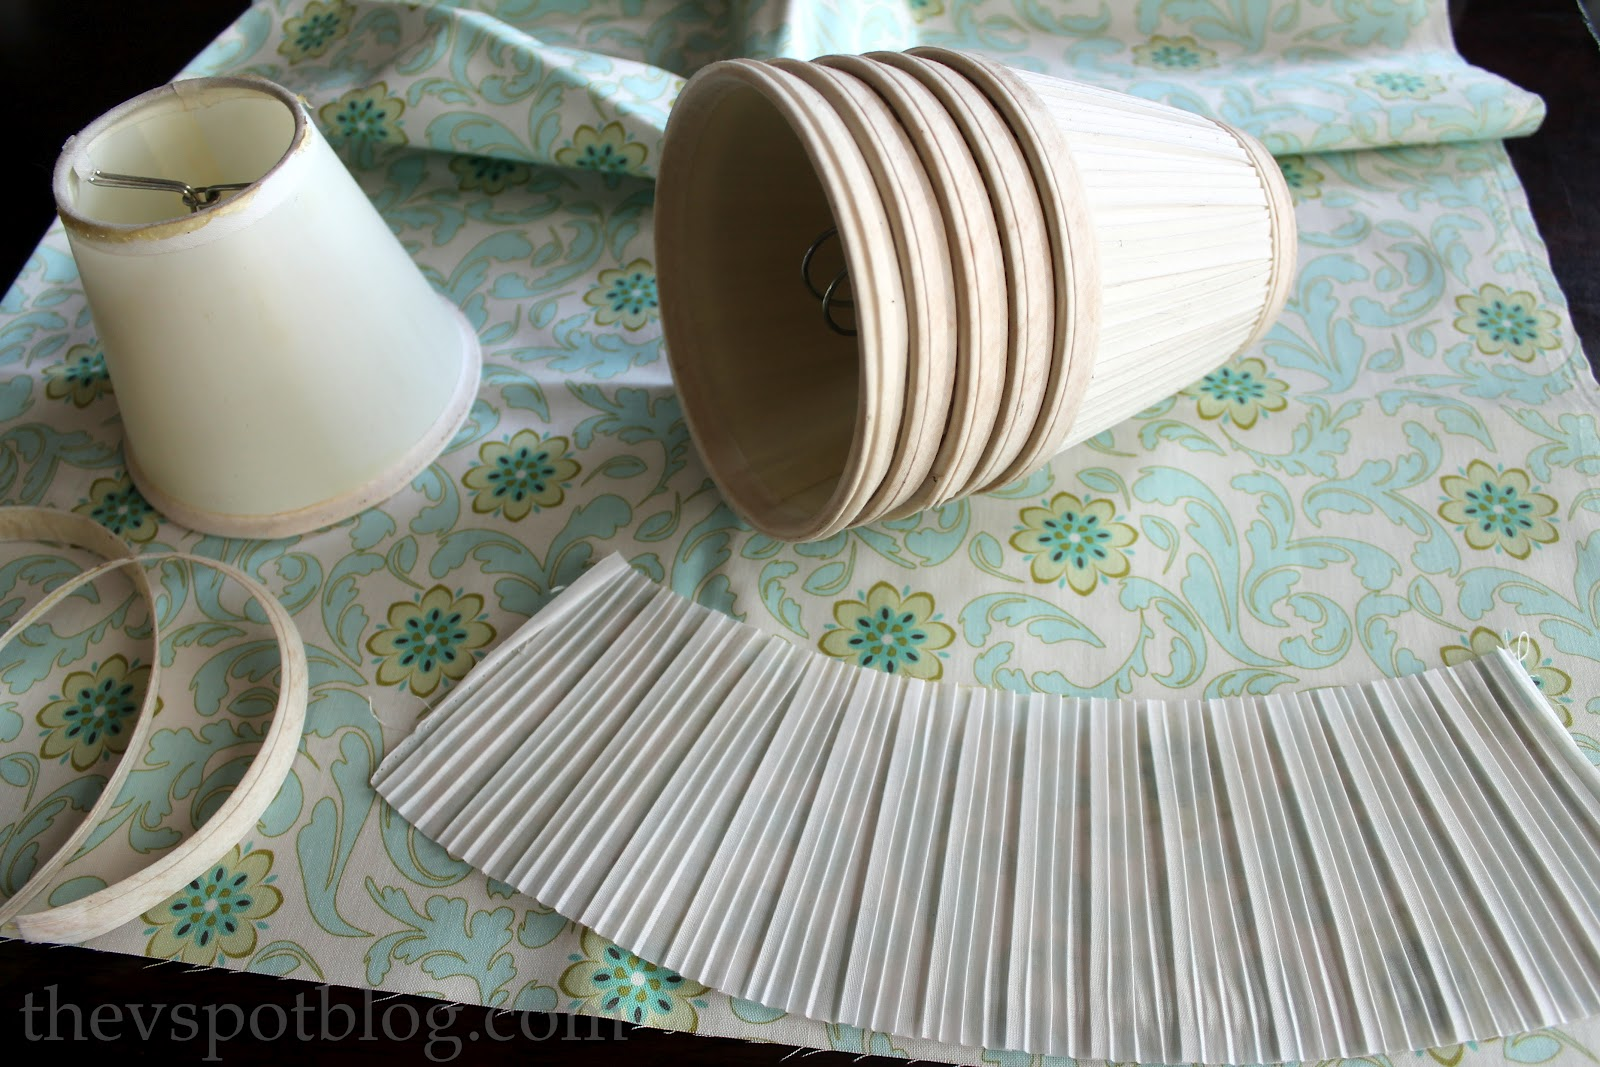 Upcycling Boring Lampshades With Fabric Spray Paint And A Glue Gun